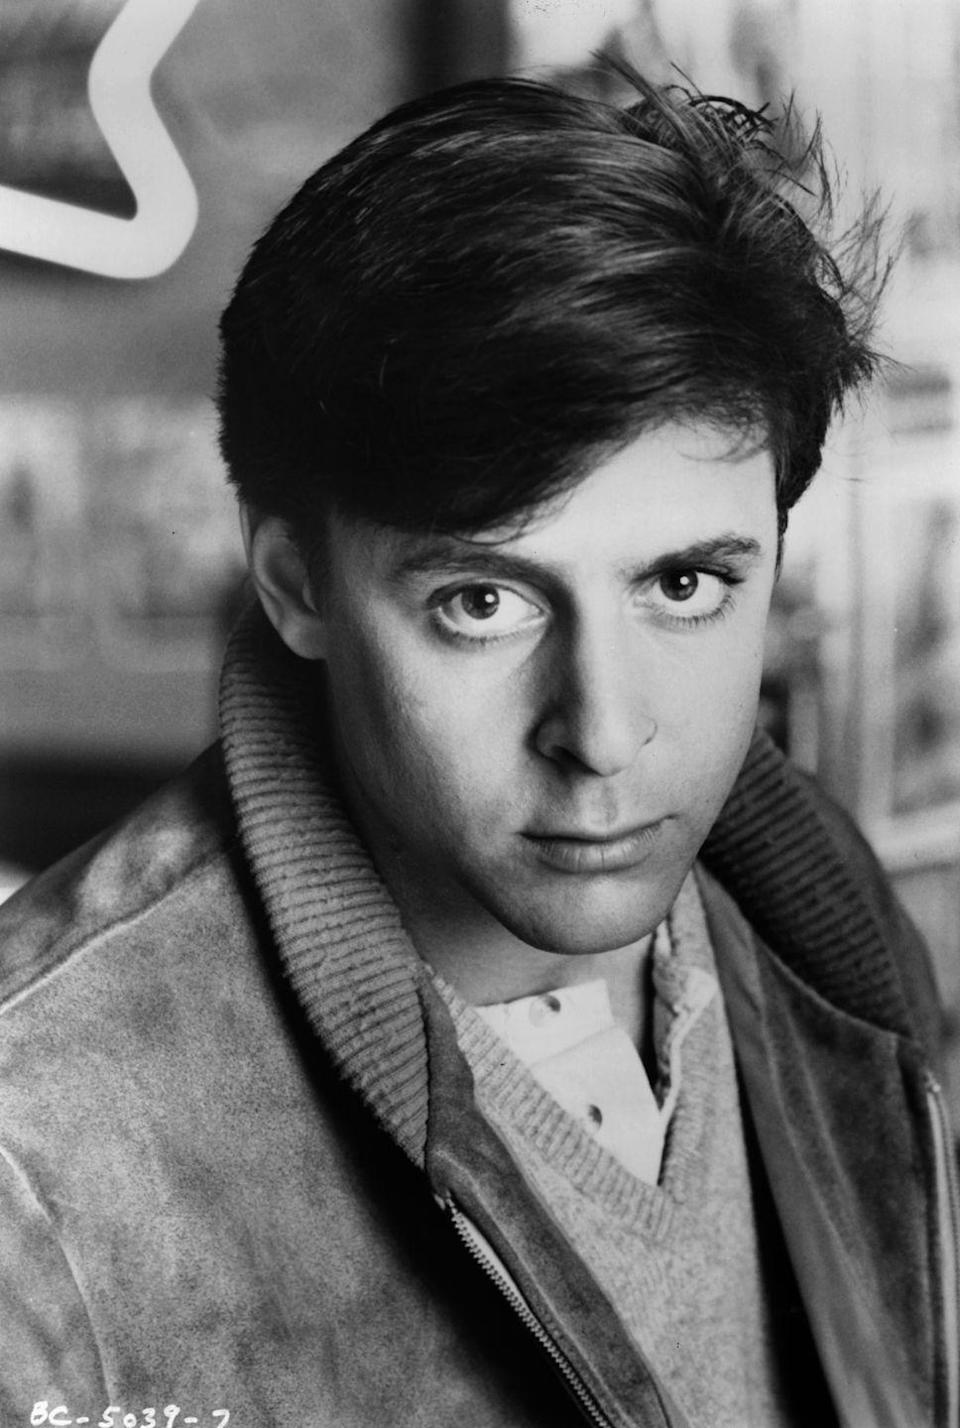 "<p>This brooding guy launched his career in the classic '80s hit <em>The Breakfast Club</em> as John Bender, a.k.a. the bad boy of the bunch. Soon after, he costarred in <em>St. Elmo's Fire</em><span class=""redactor-invisible-space""> (1985) alongside fellow Brat Pack members Emilio Estevez, Ally Sheedy, and Andrew McCarthy.</span></p>"